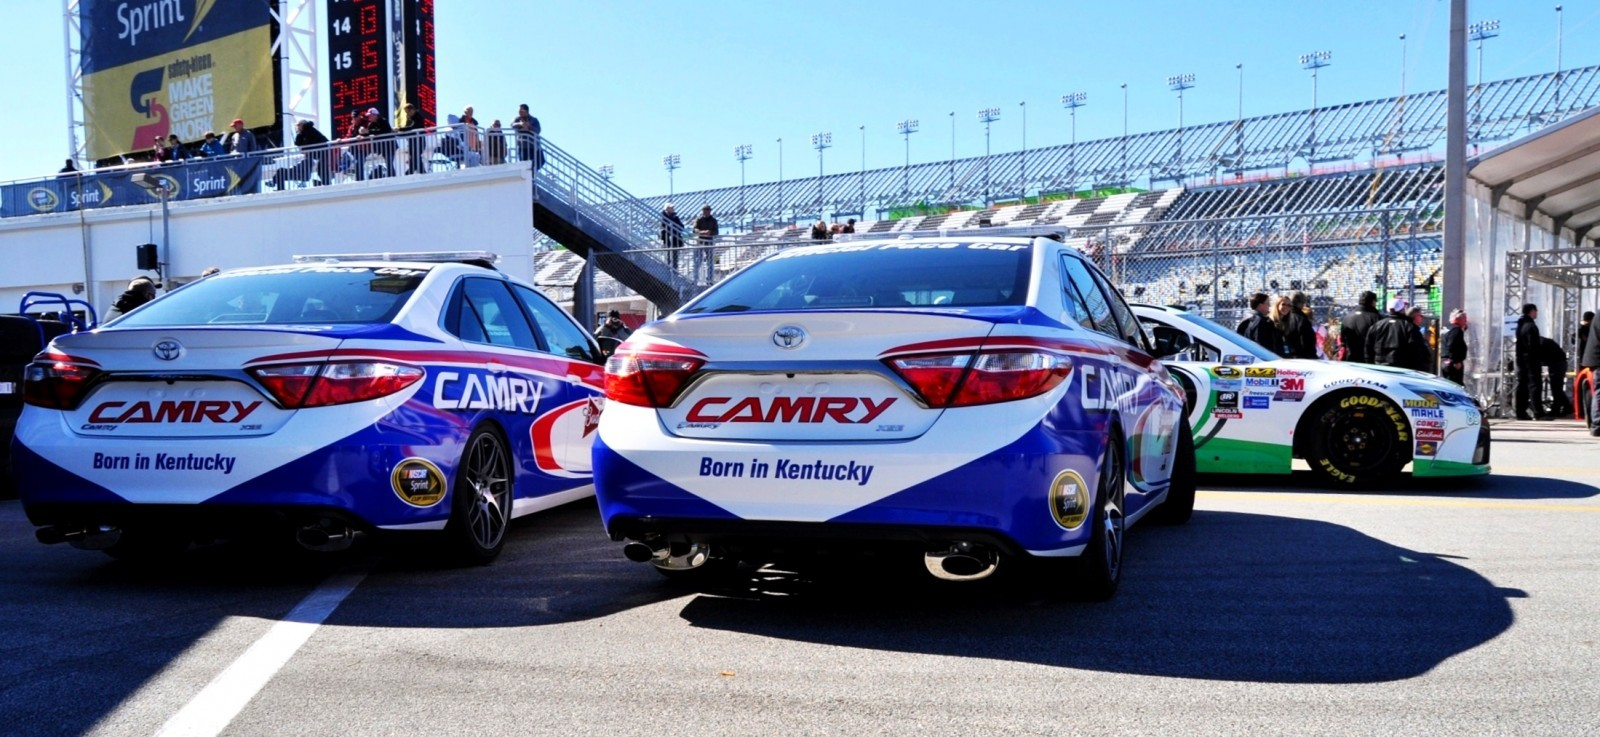 2015 Toyota Camry - DAYTONA 500 Official Pace Car 14